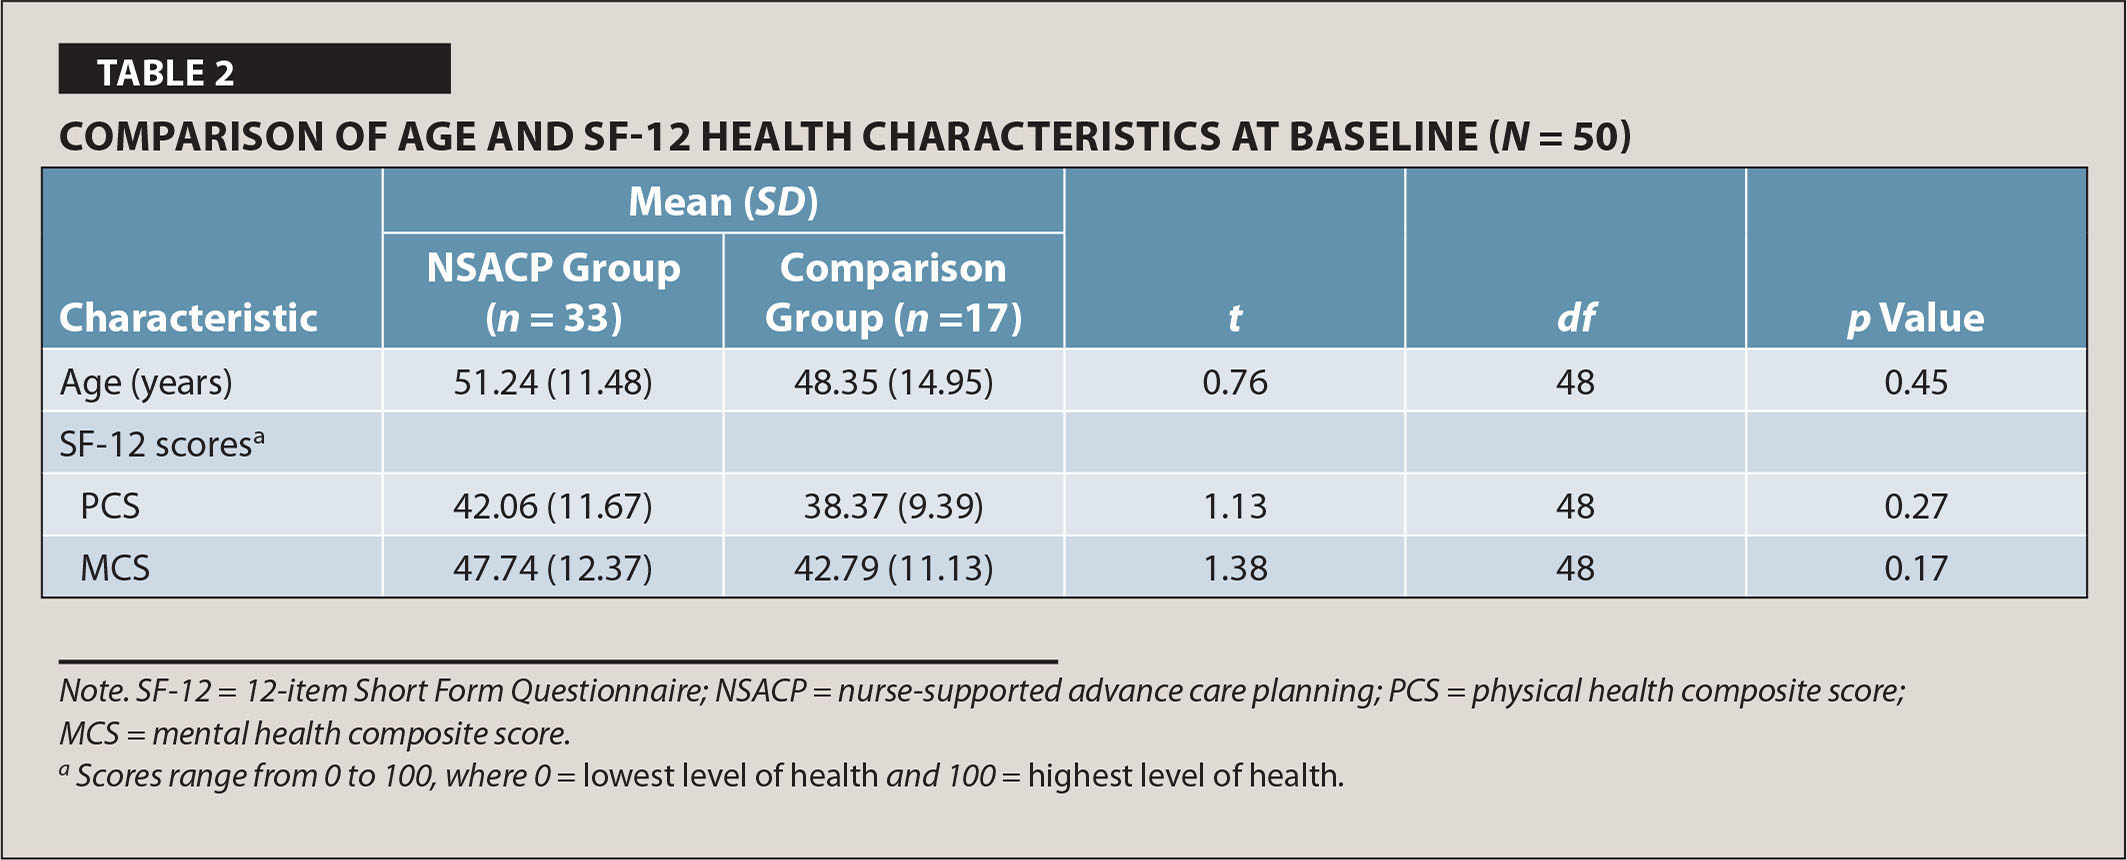 Comparison of Age and Sf-12 Health Characteristics at Baseline (N = 50)